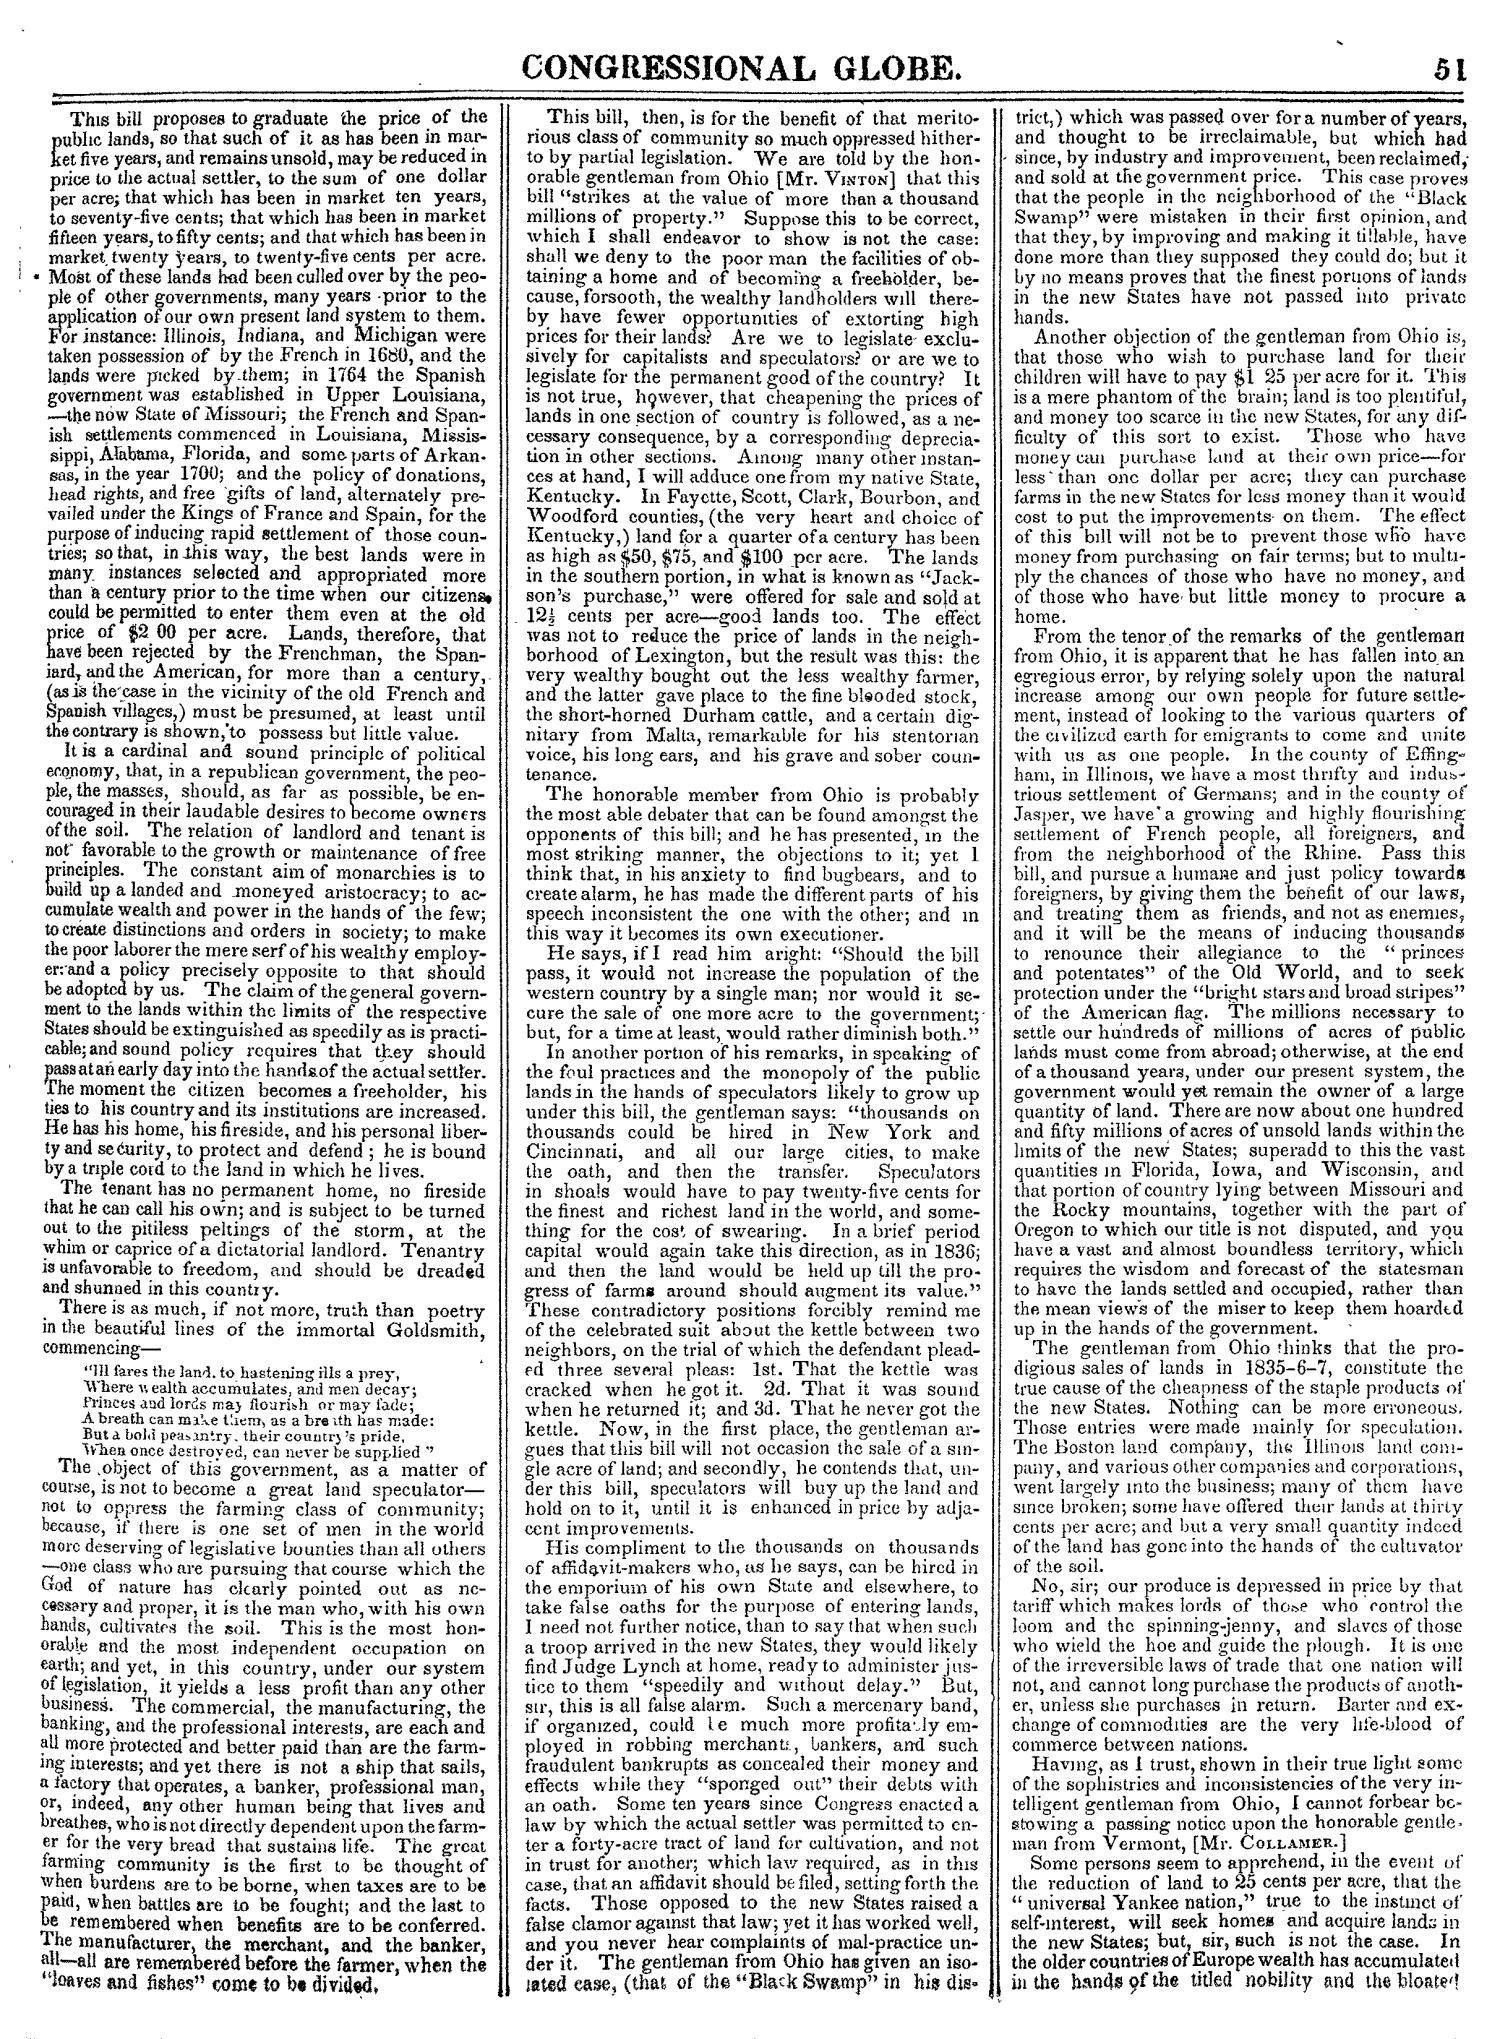 The Congressional Globe, Volume 14: Twenty-Eighth Congress, Second Session                                                                                                      51